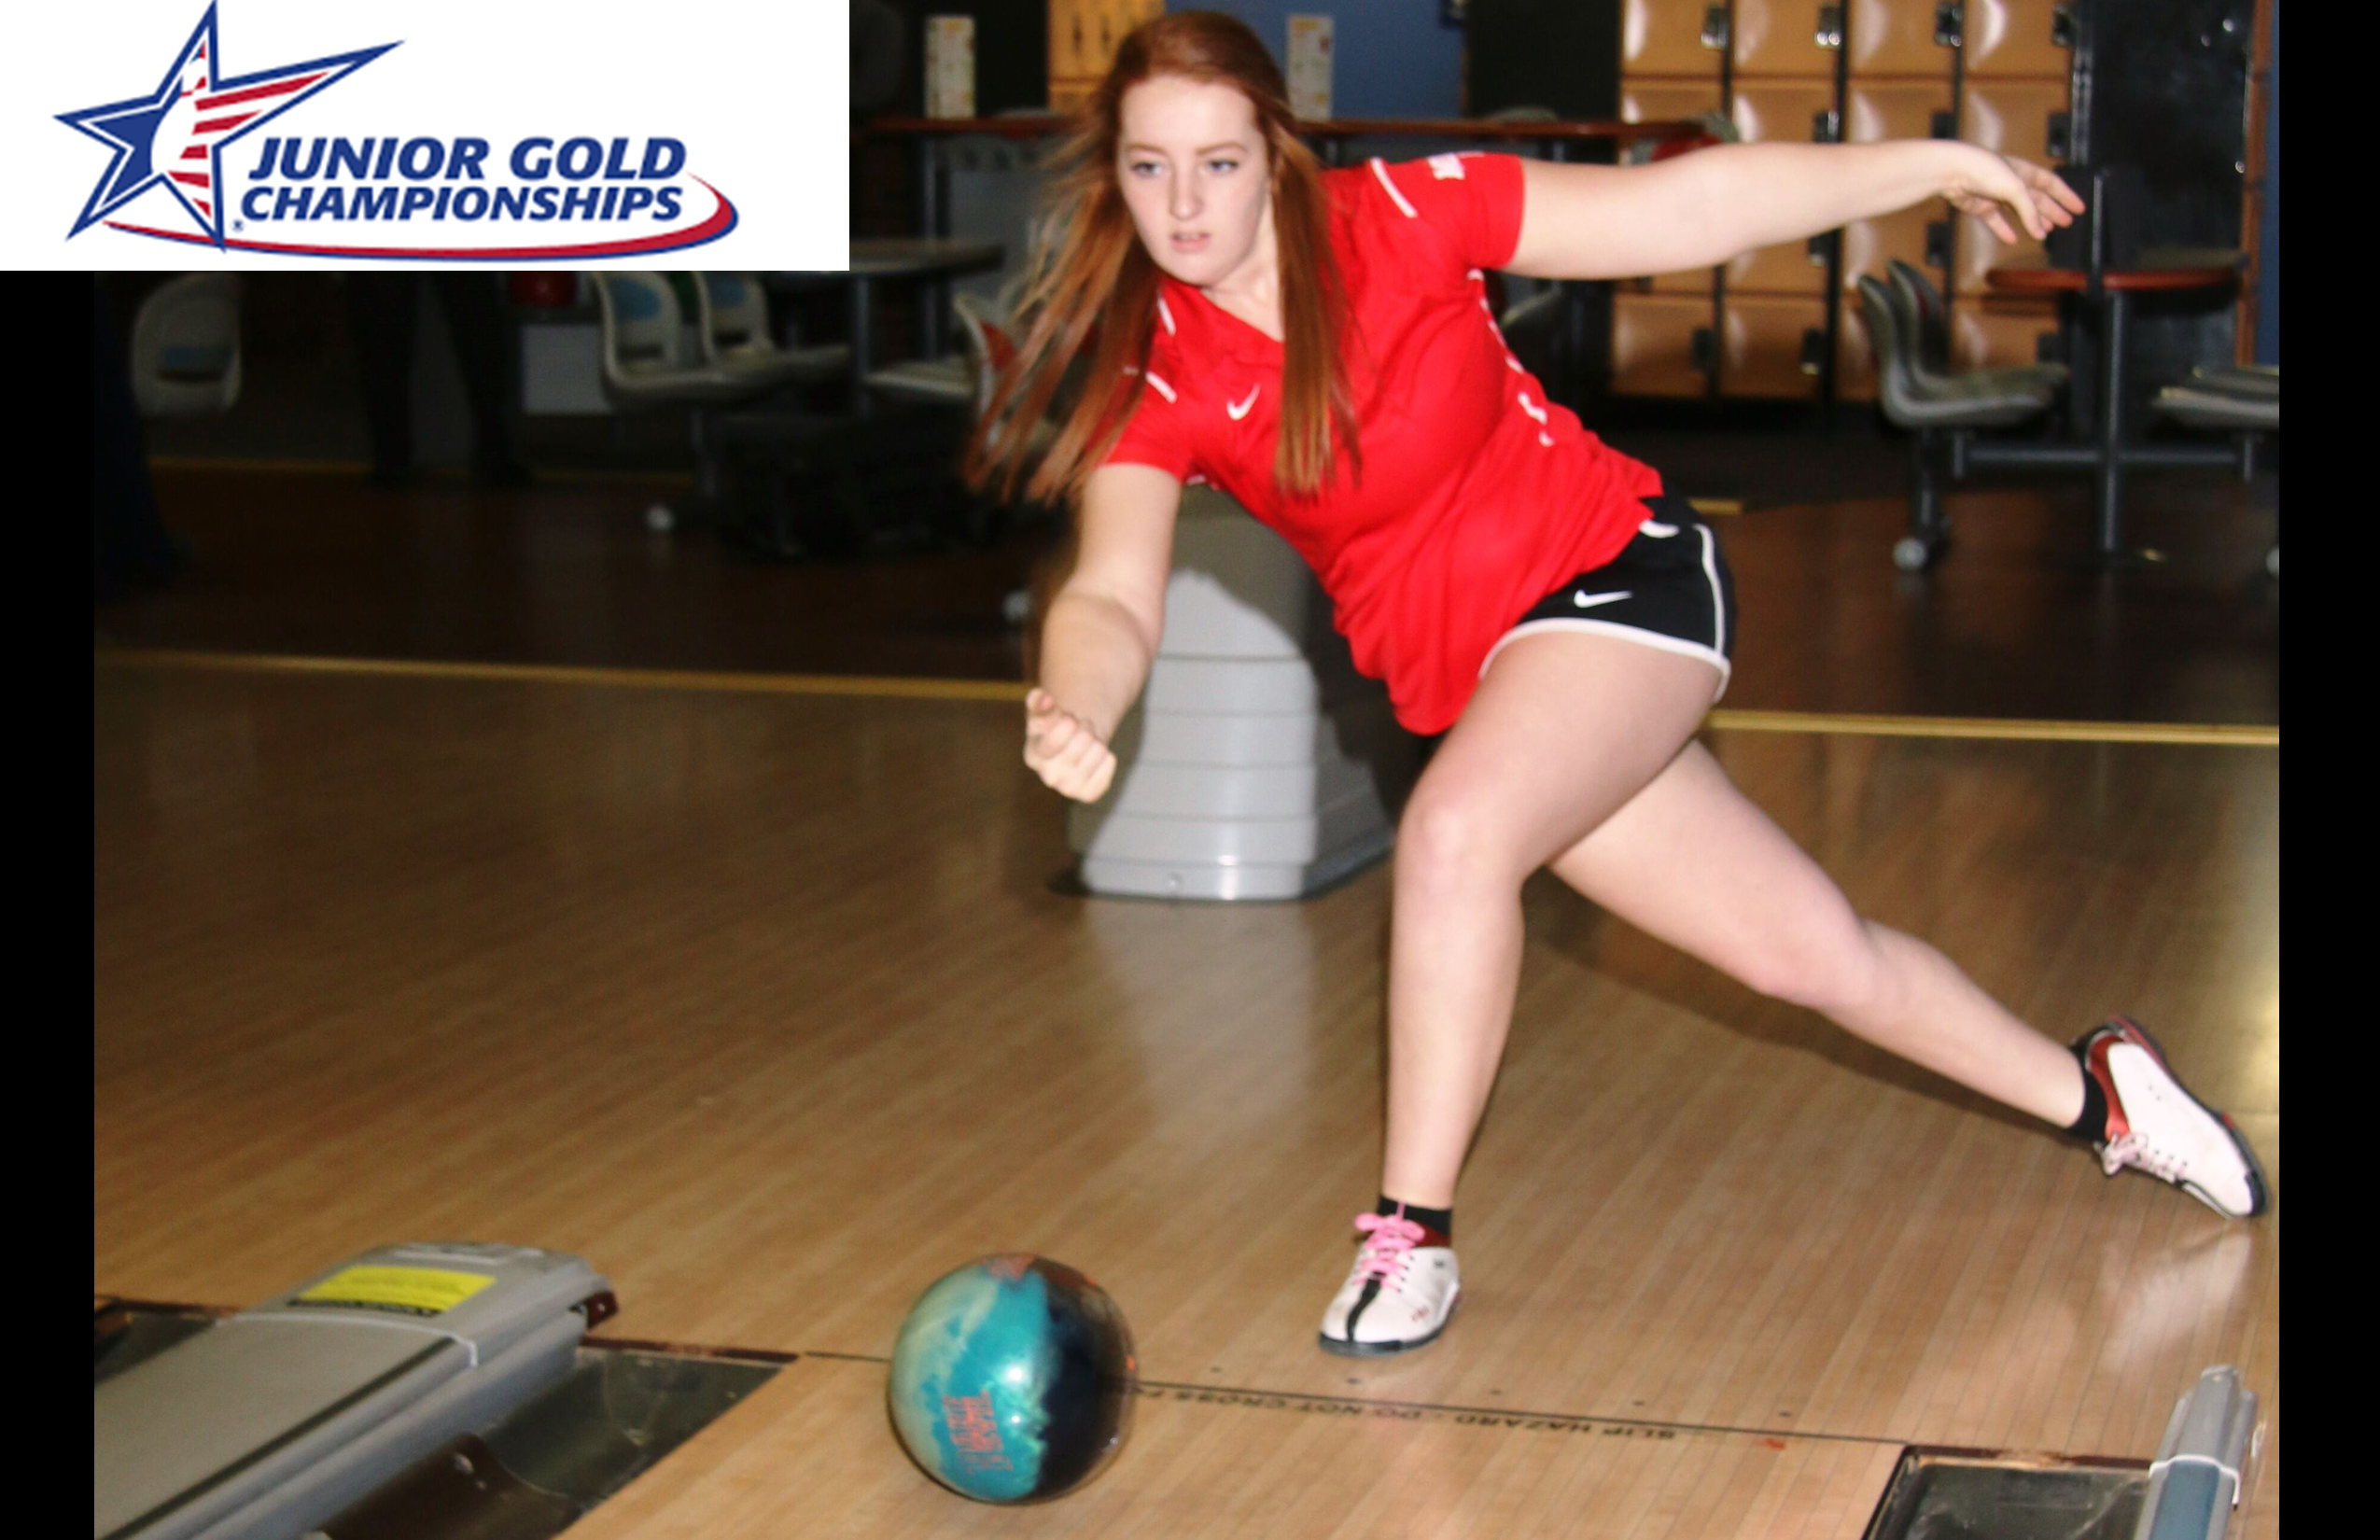 DSU's Alexis Neuer Earns Spot on USA Junior Bowling Team